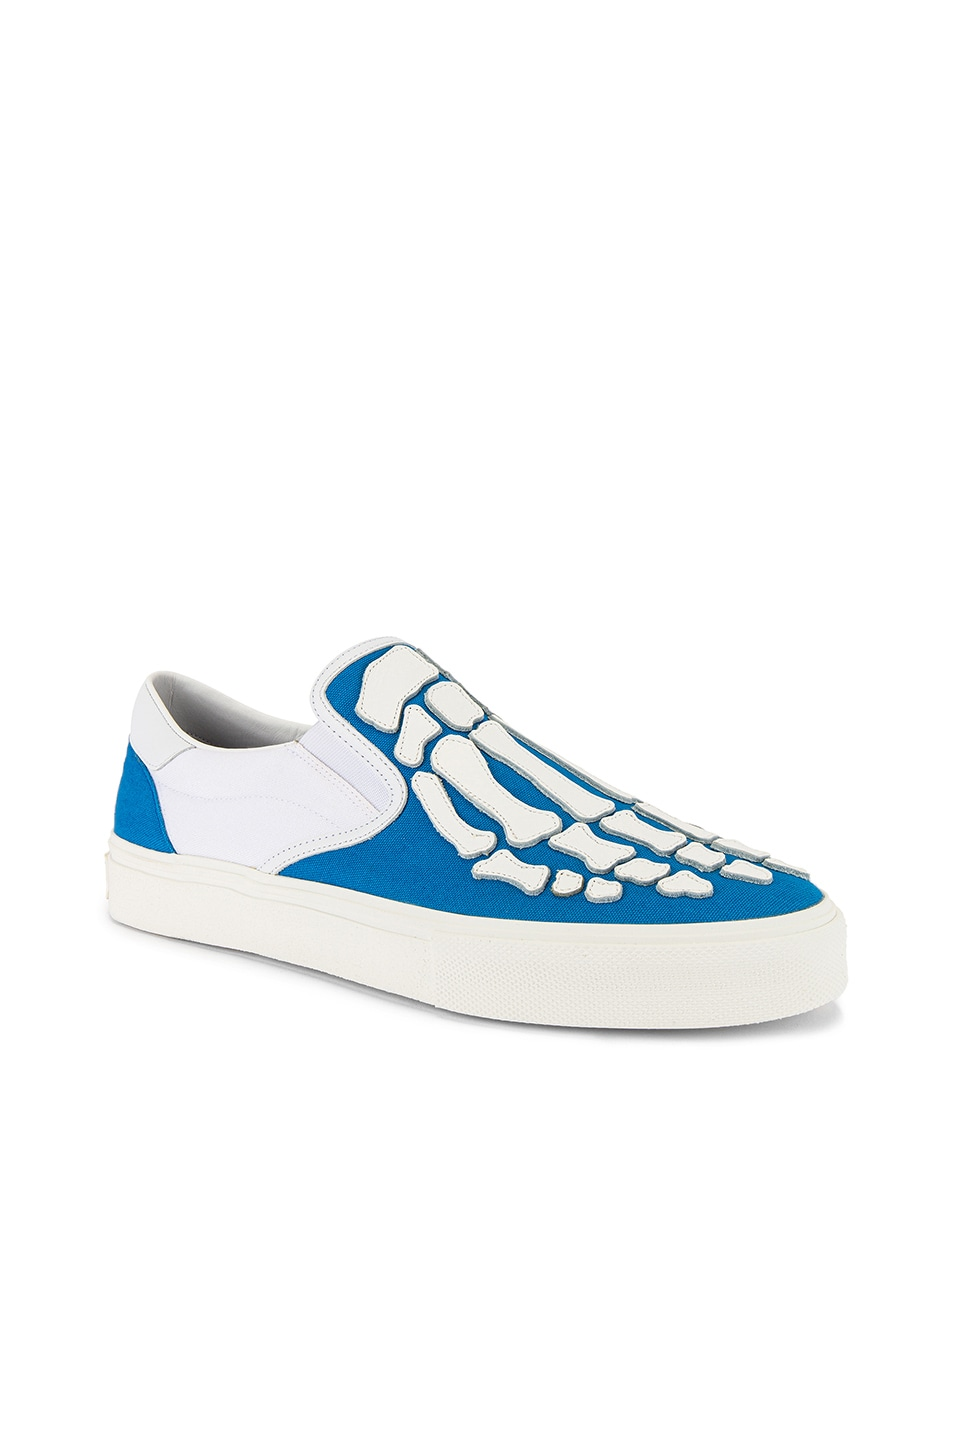 Image 1 of Amiri Skel Toe Slip On in Blue & White & White